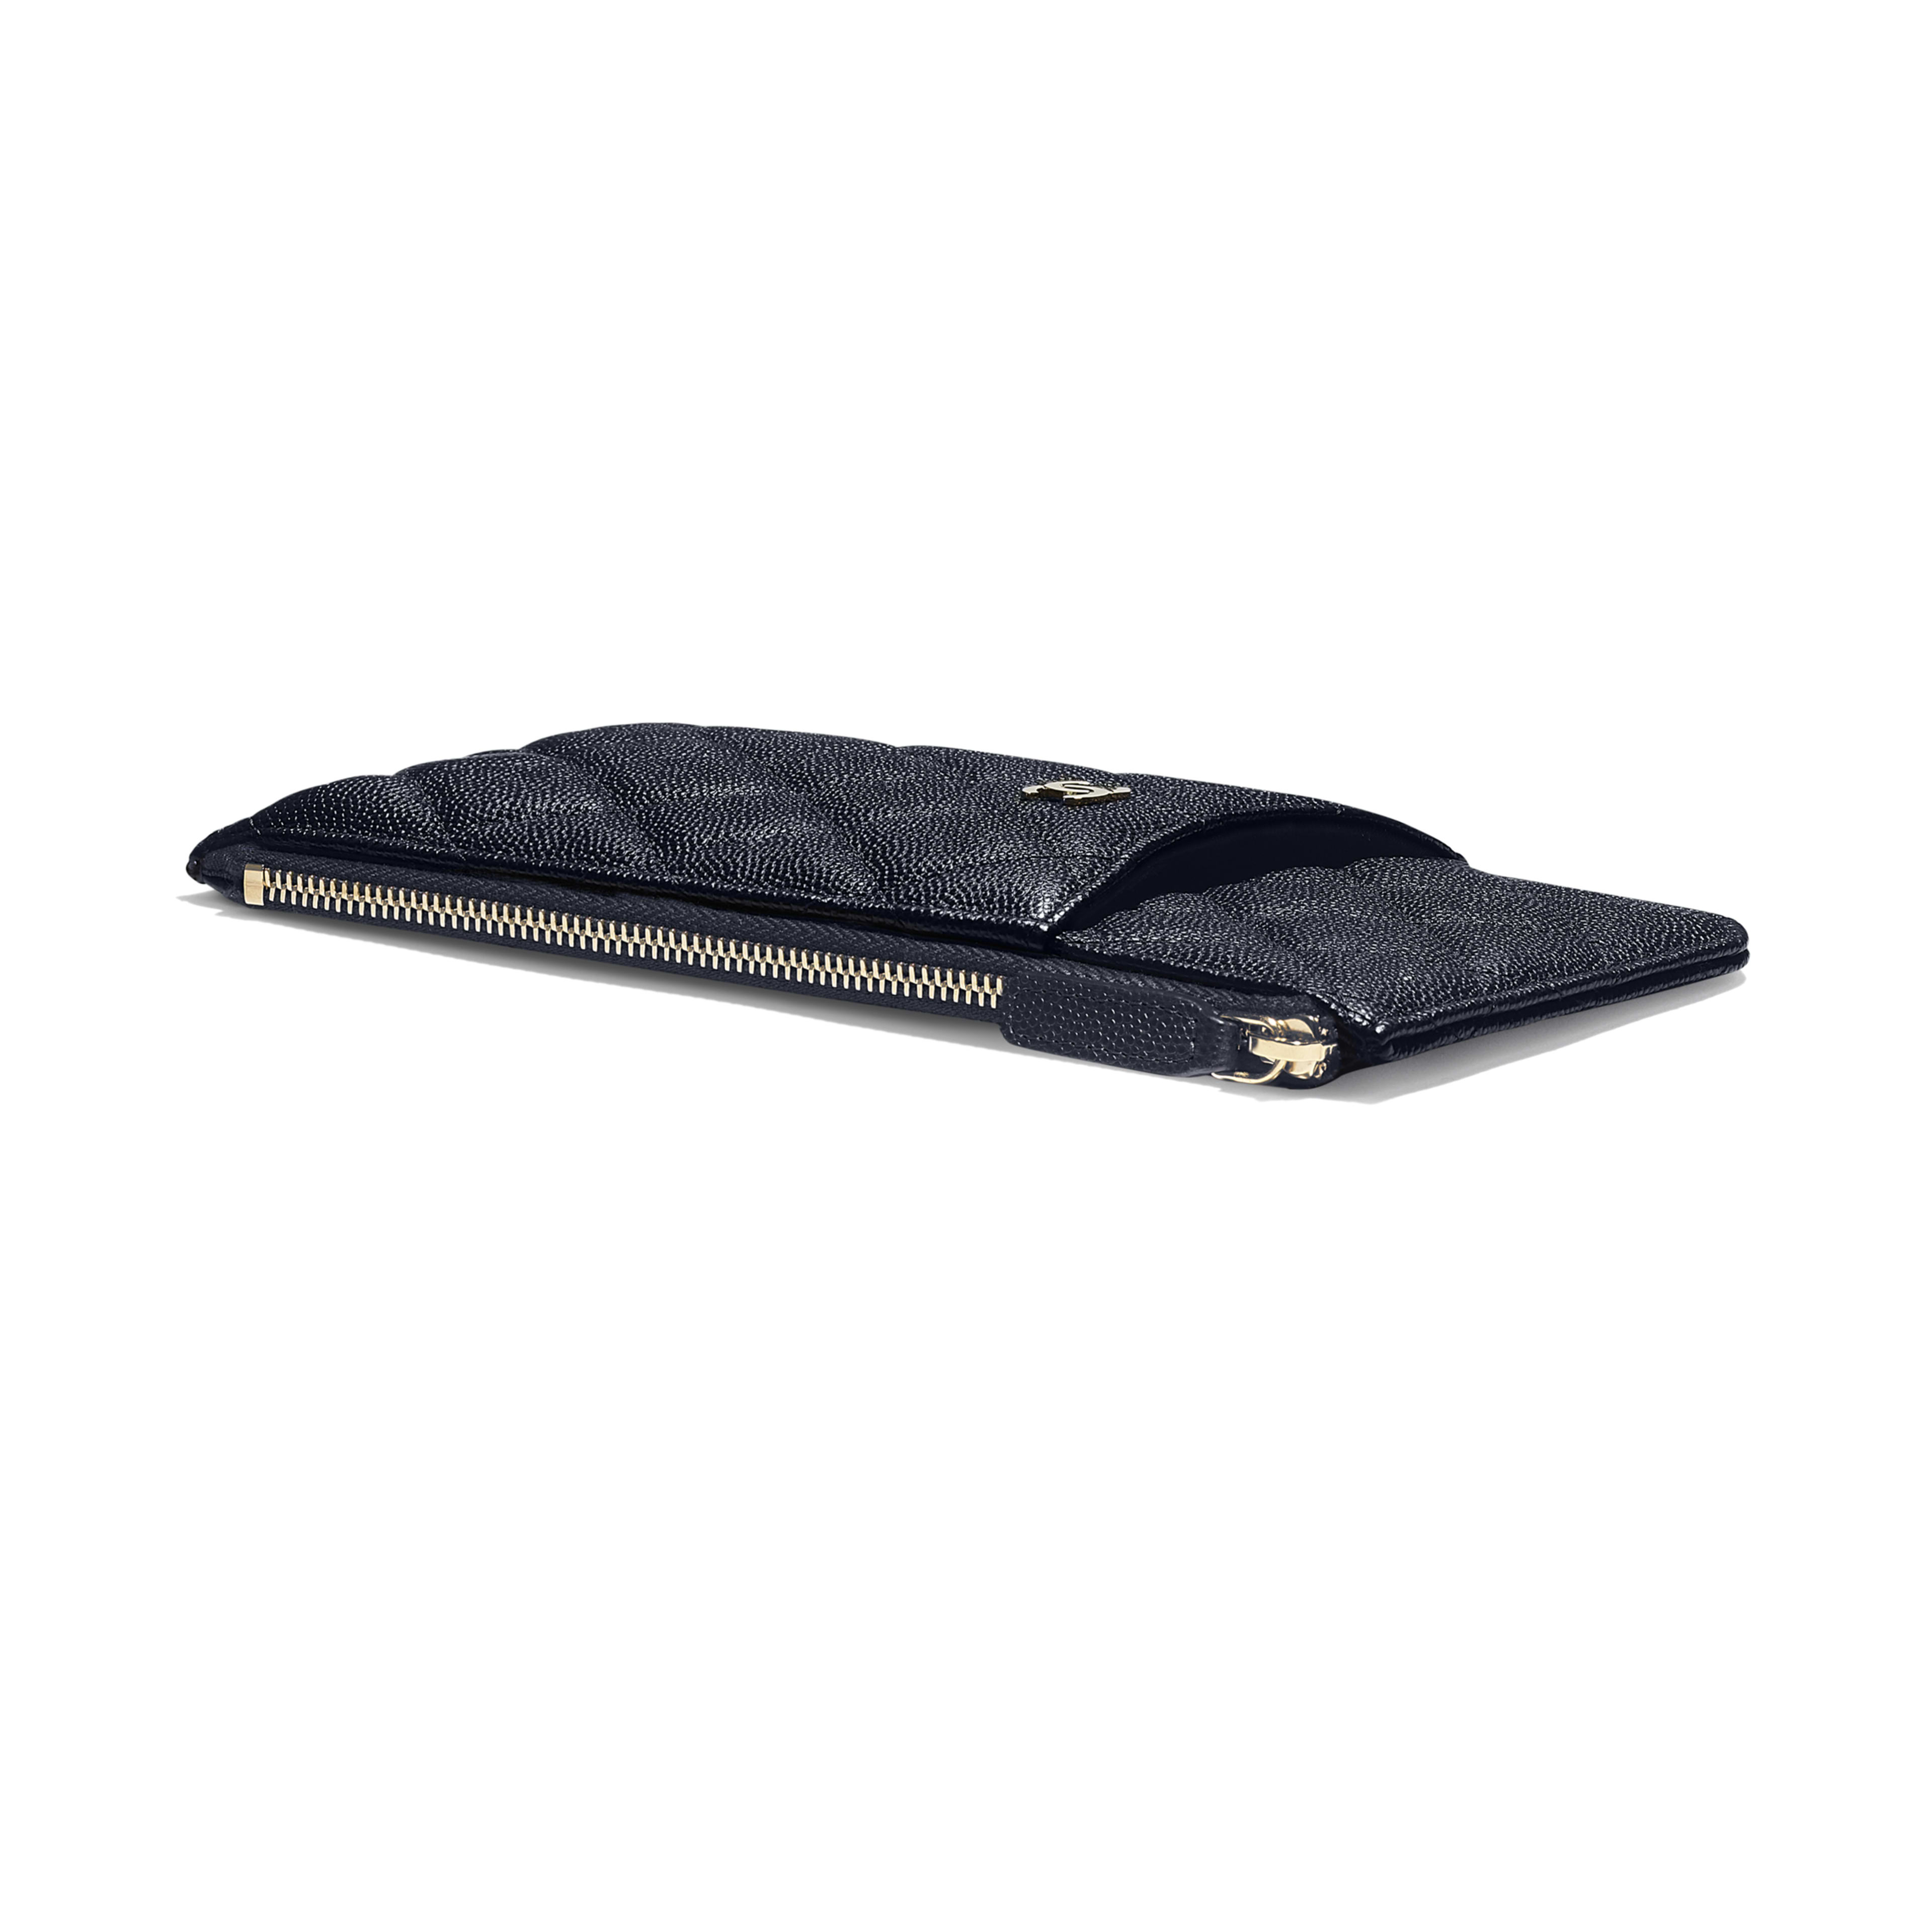 Classic Pouch for iPhone - Navy Blue - Grained Calfskin & Gold-Tone Metal - Extra view - see full sized version